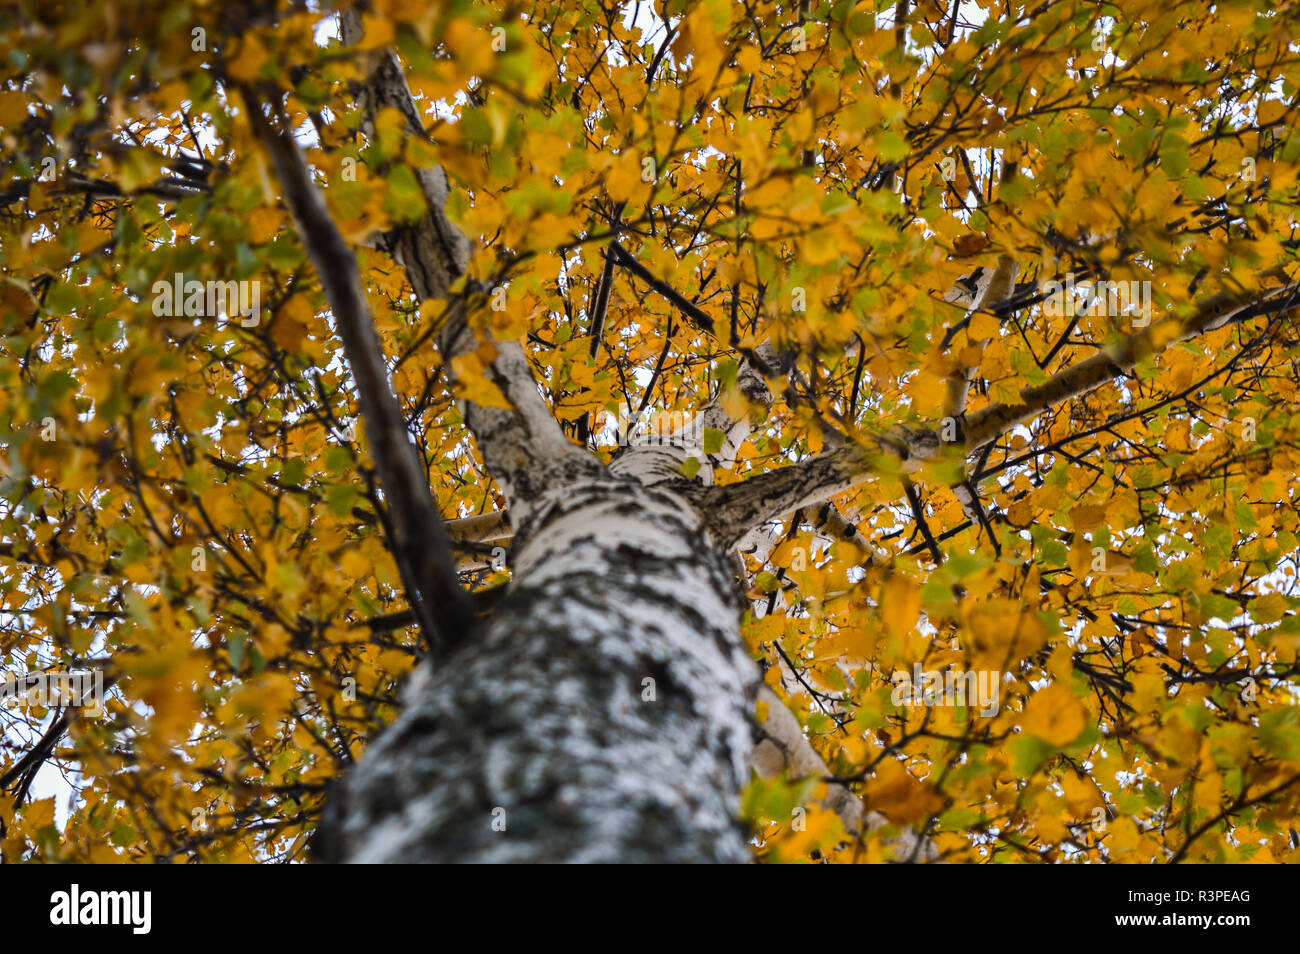 birch leaves - Stock Image